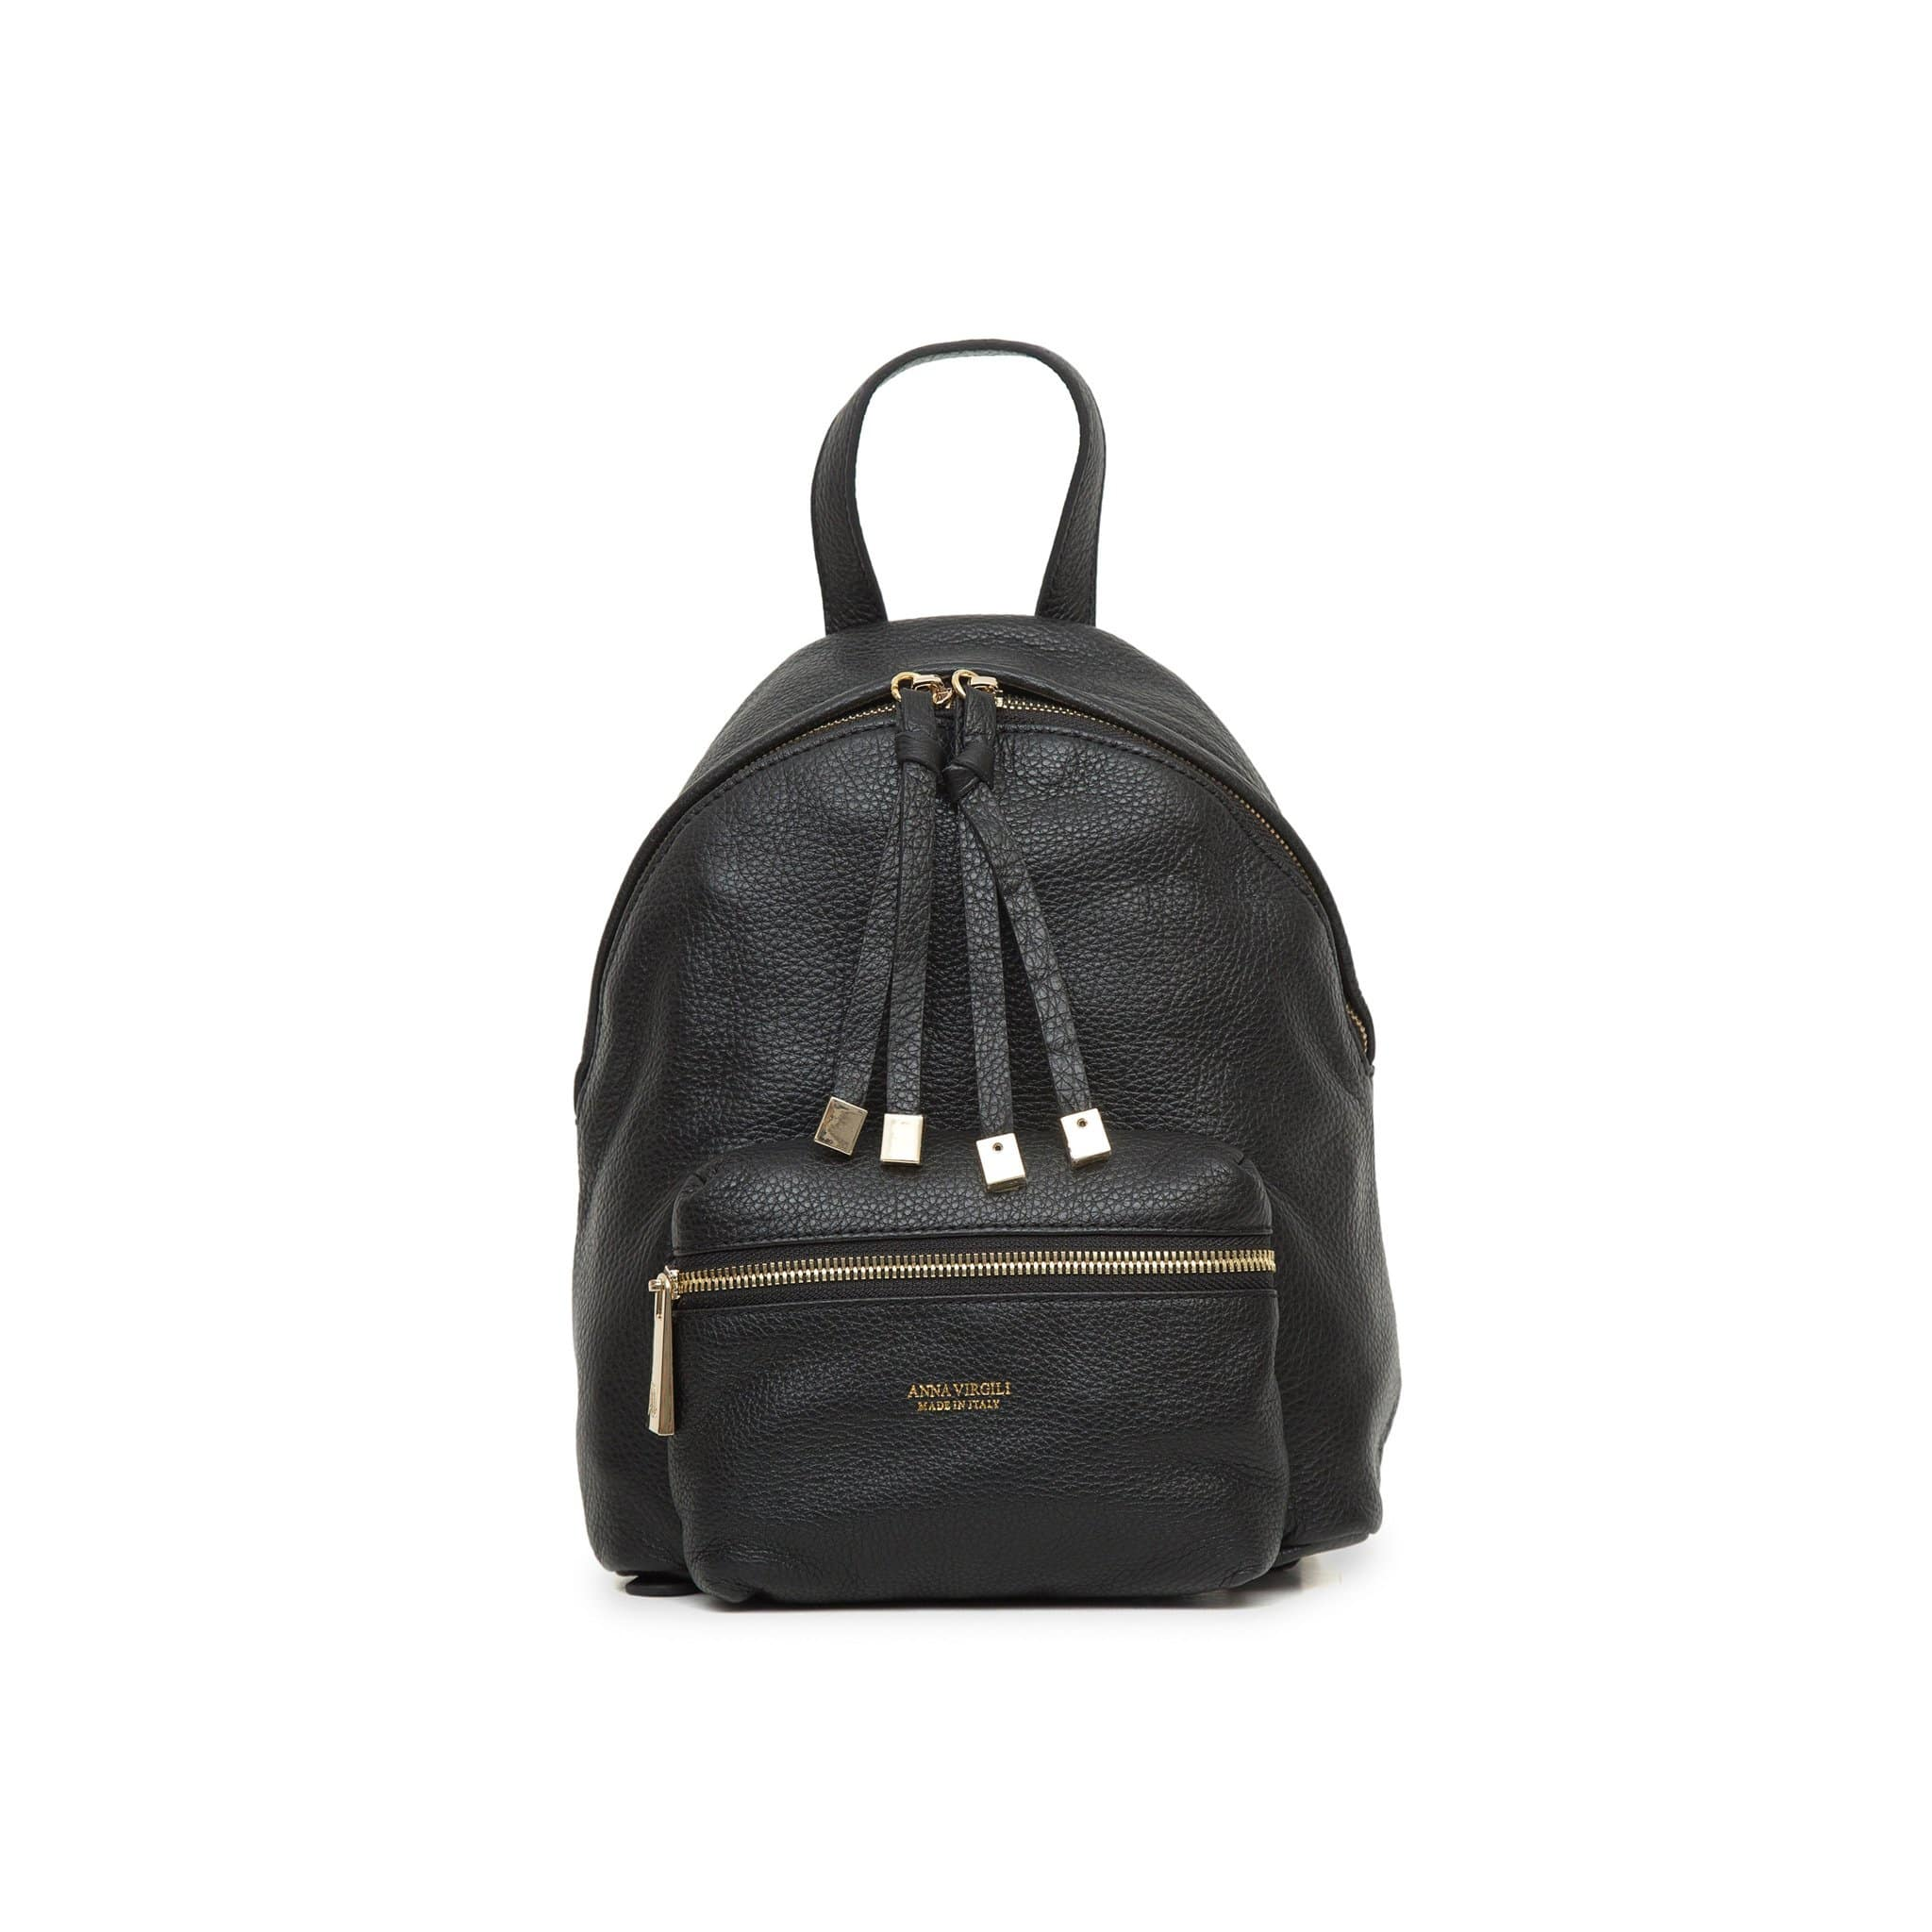 Alessia Rimini Leather Backpack - Black